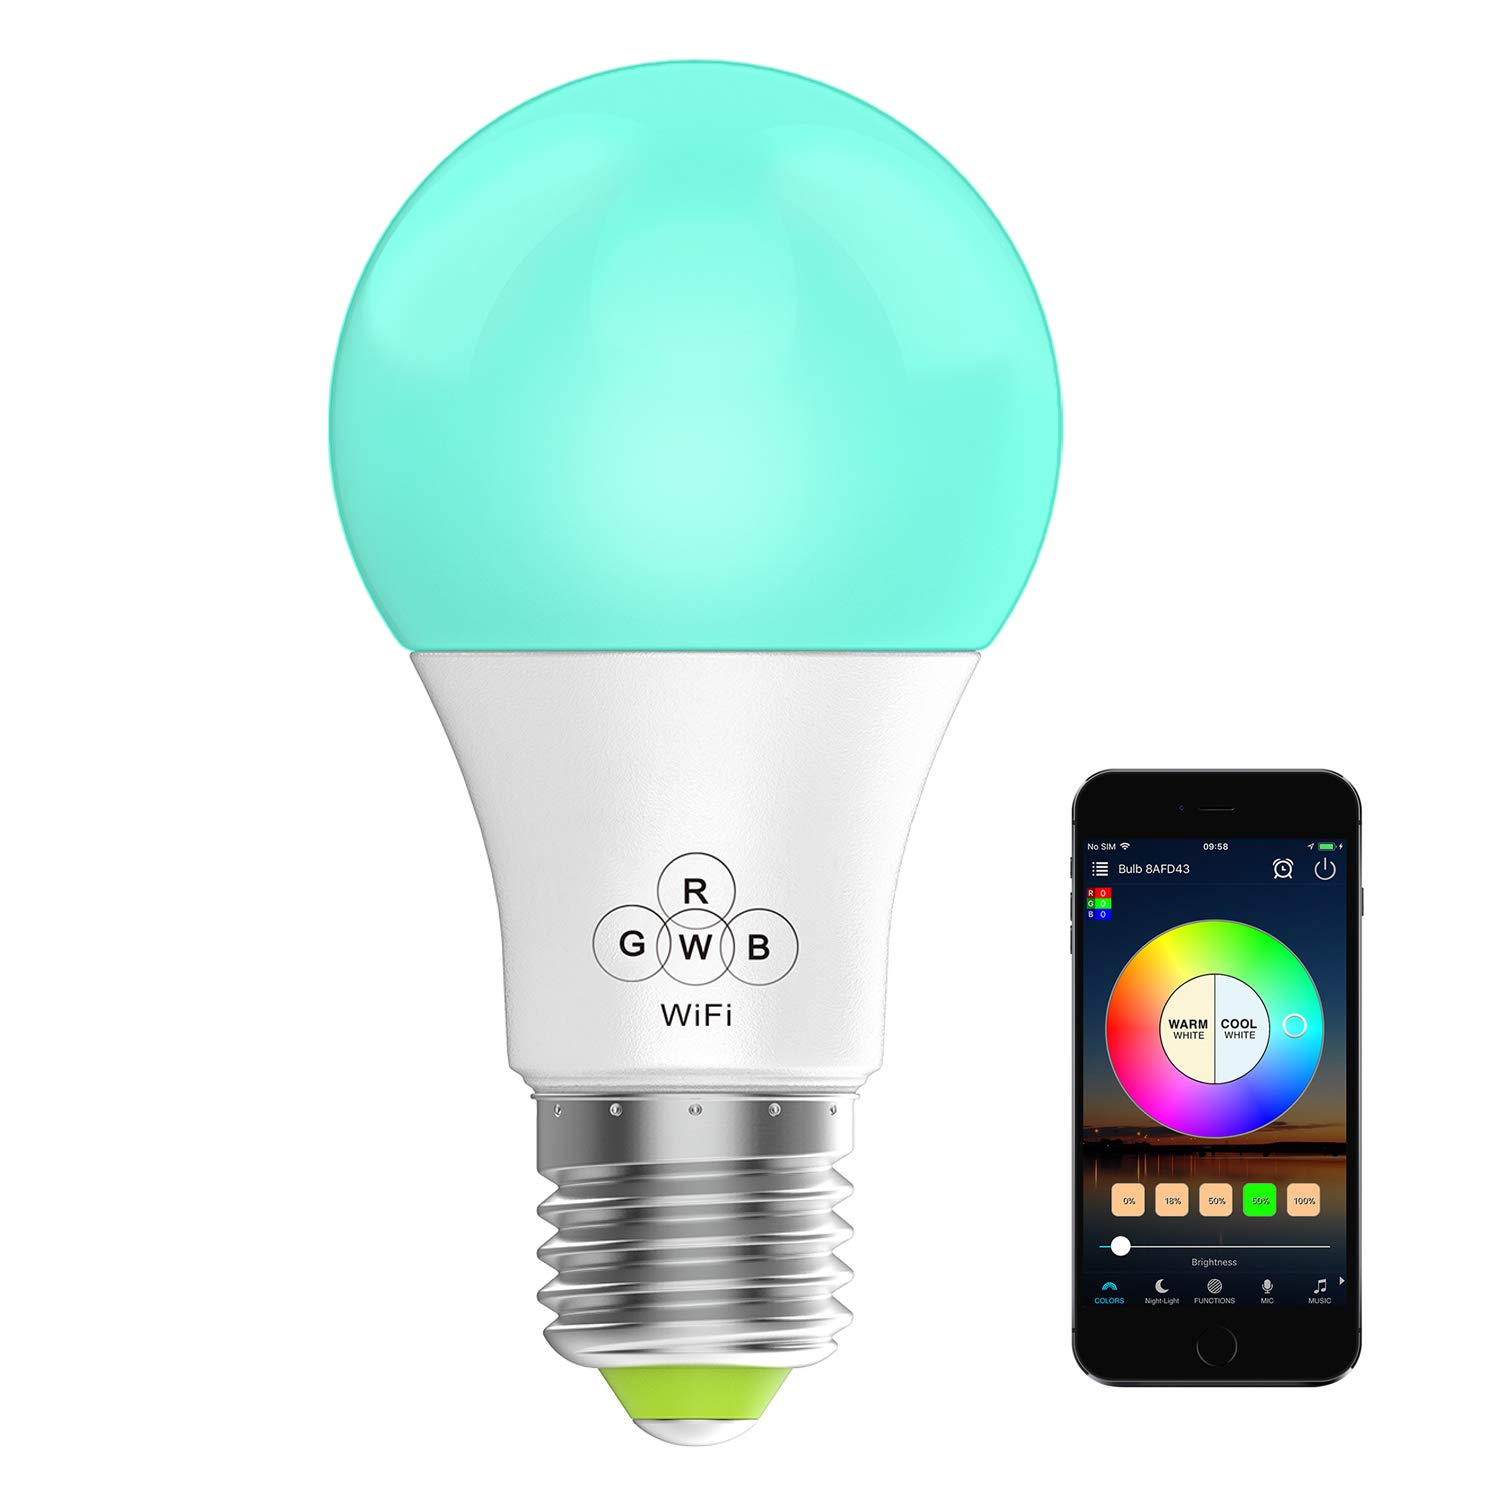 Konxie LED WiFi Smart Lights Bulb, Compatible with Alexa and Google Assistant and IFTTT,e27 a19 RGBW Edison Bulb, No Hub Required, Music Mode,Sunrise, Sunset Mode